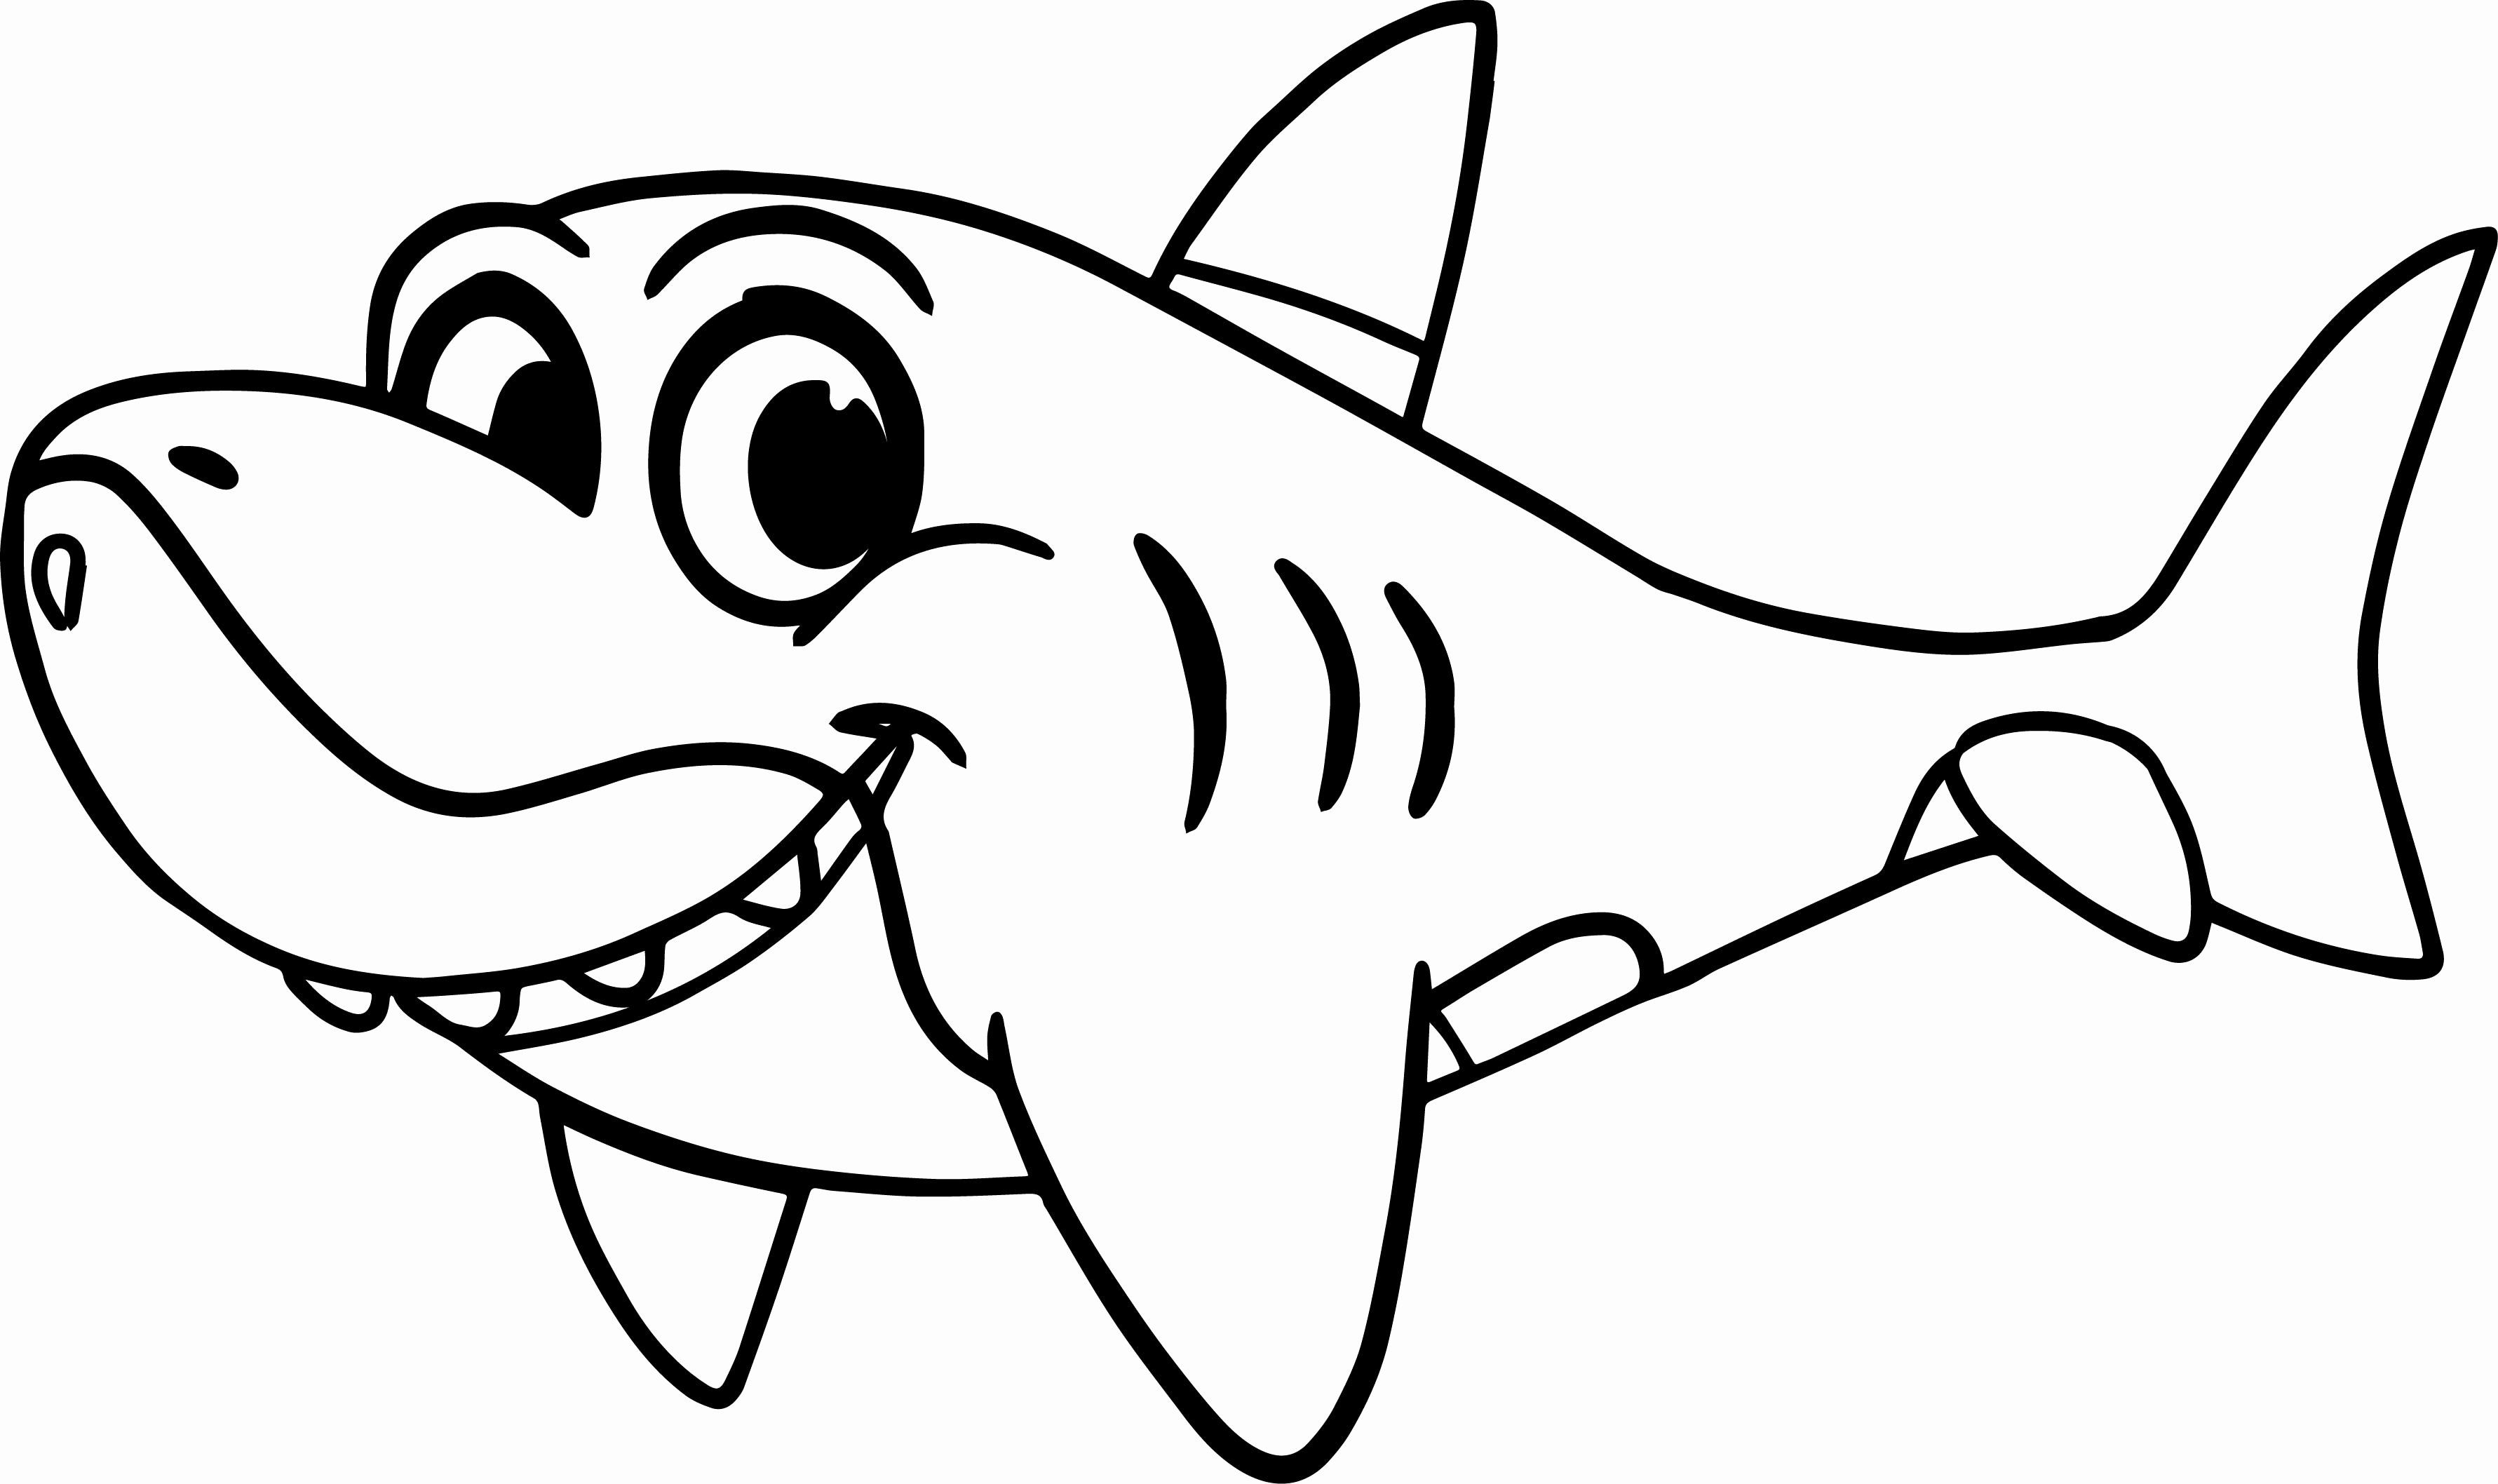 Baby Shark Coloring Page Elegant Morphle Cartoon My Cute Shark Coloring Page Shark Coloring Pages Cartoon Coloring Pages Cute Coloring Pages